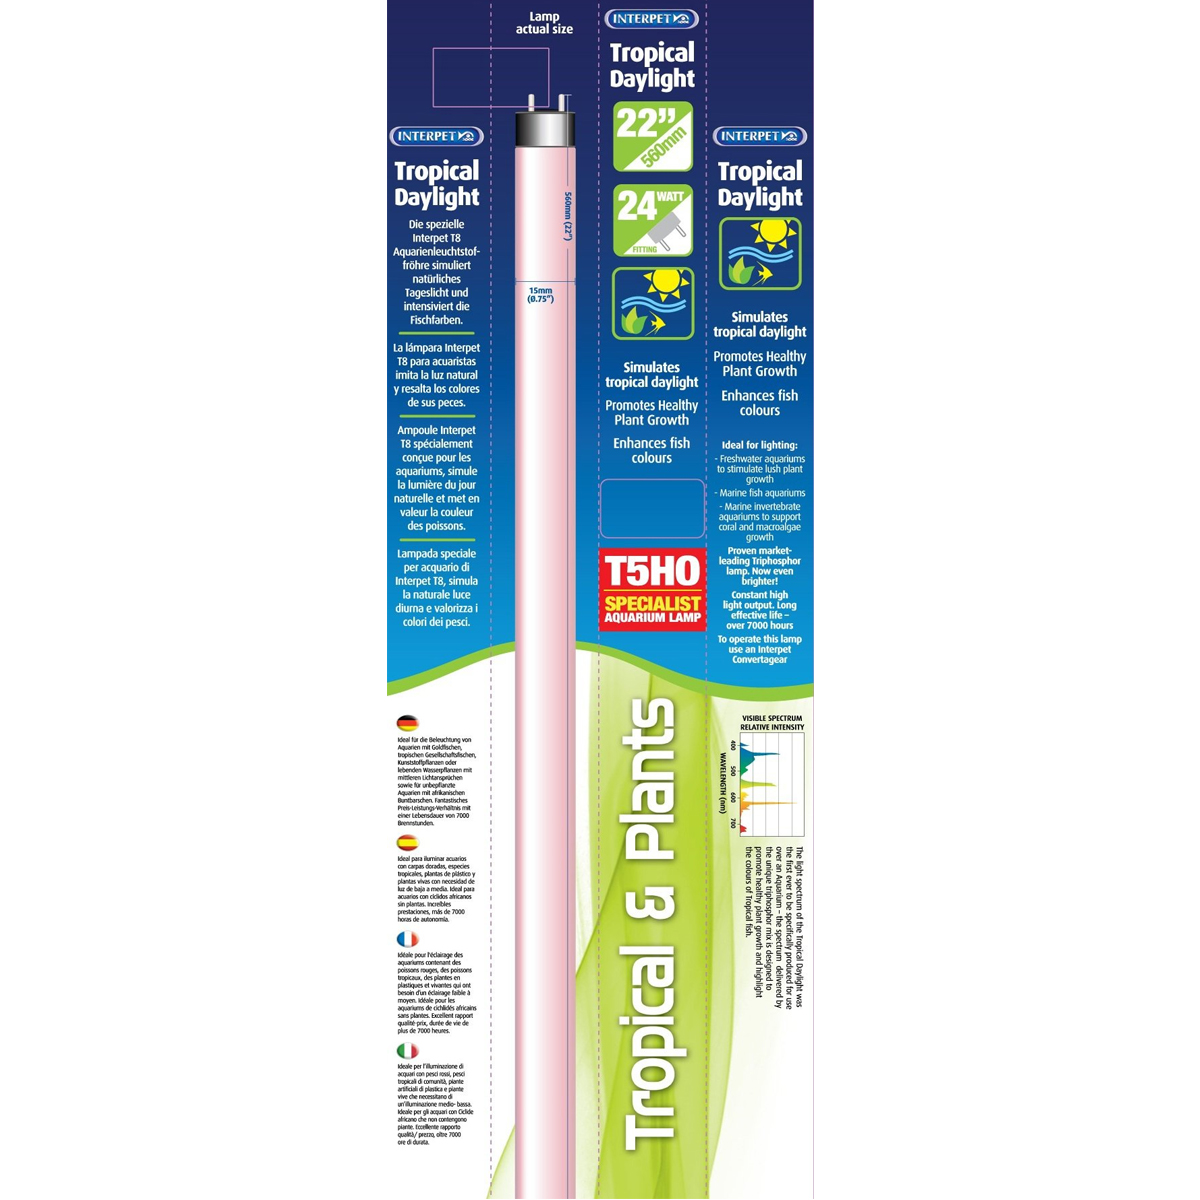 INTERPET 24W TROPICAL DAYLIGHT BULB T5 REPLACEMENT